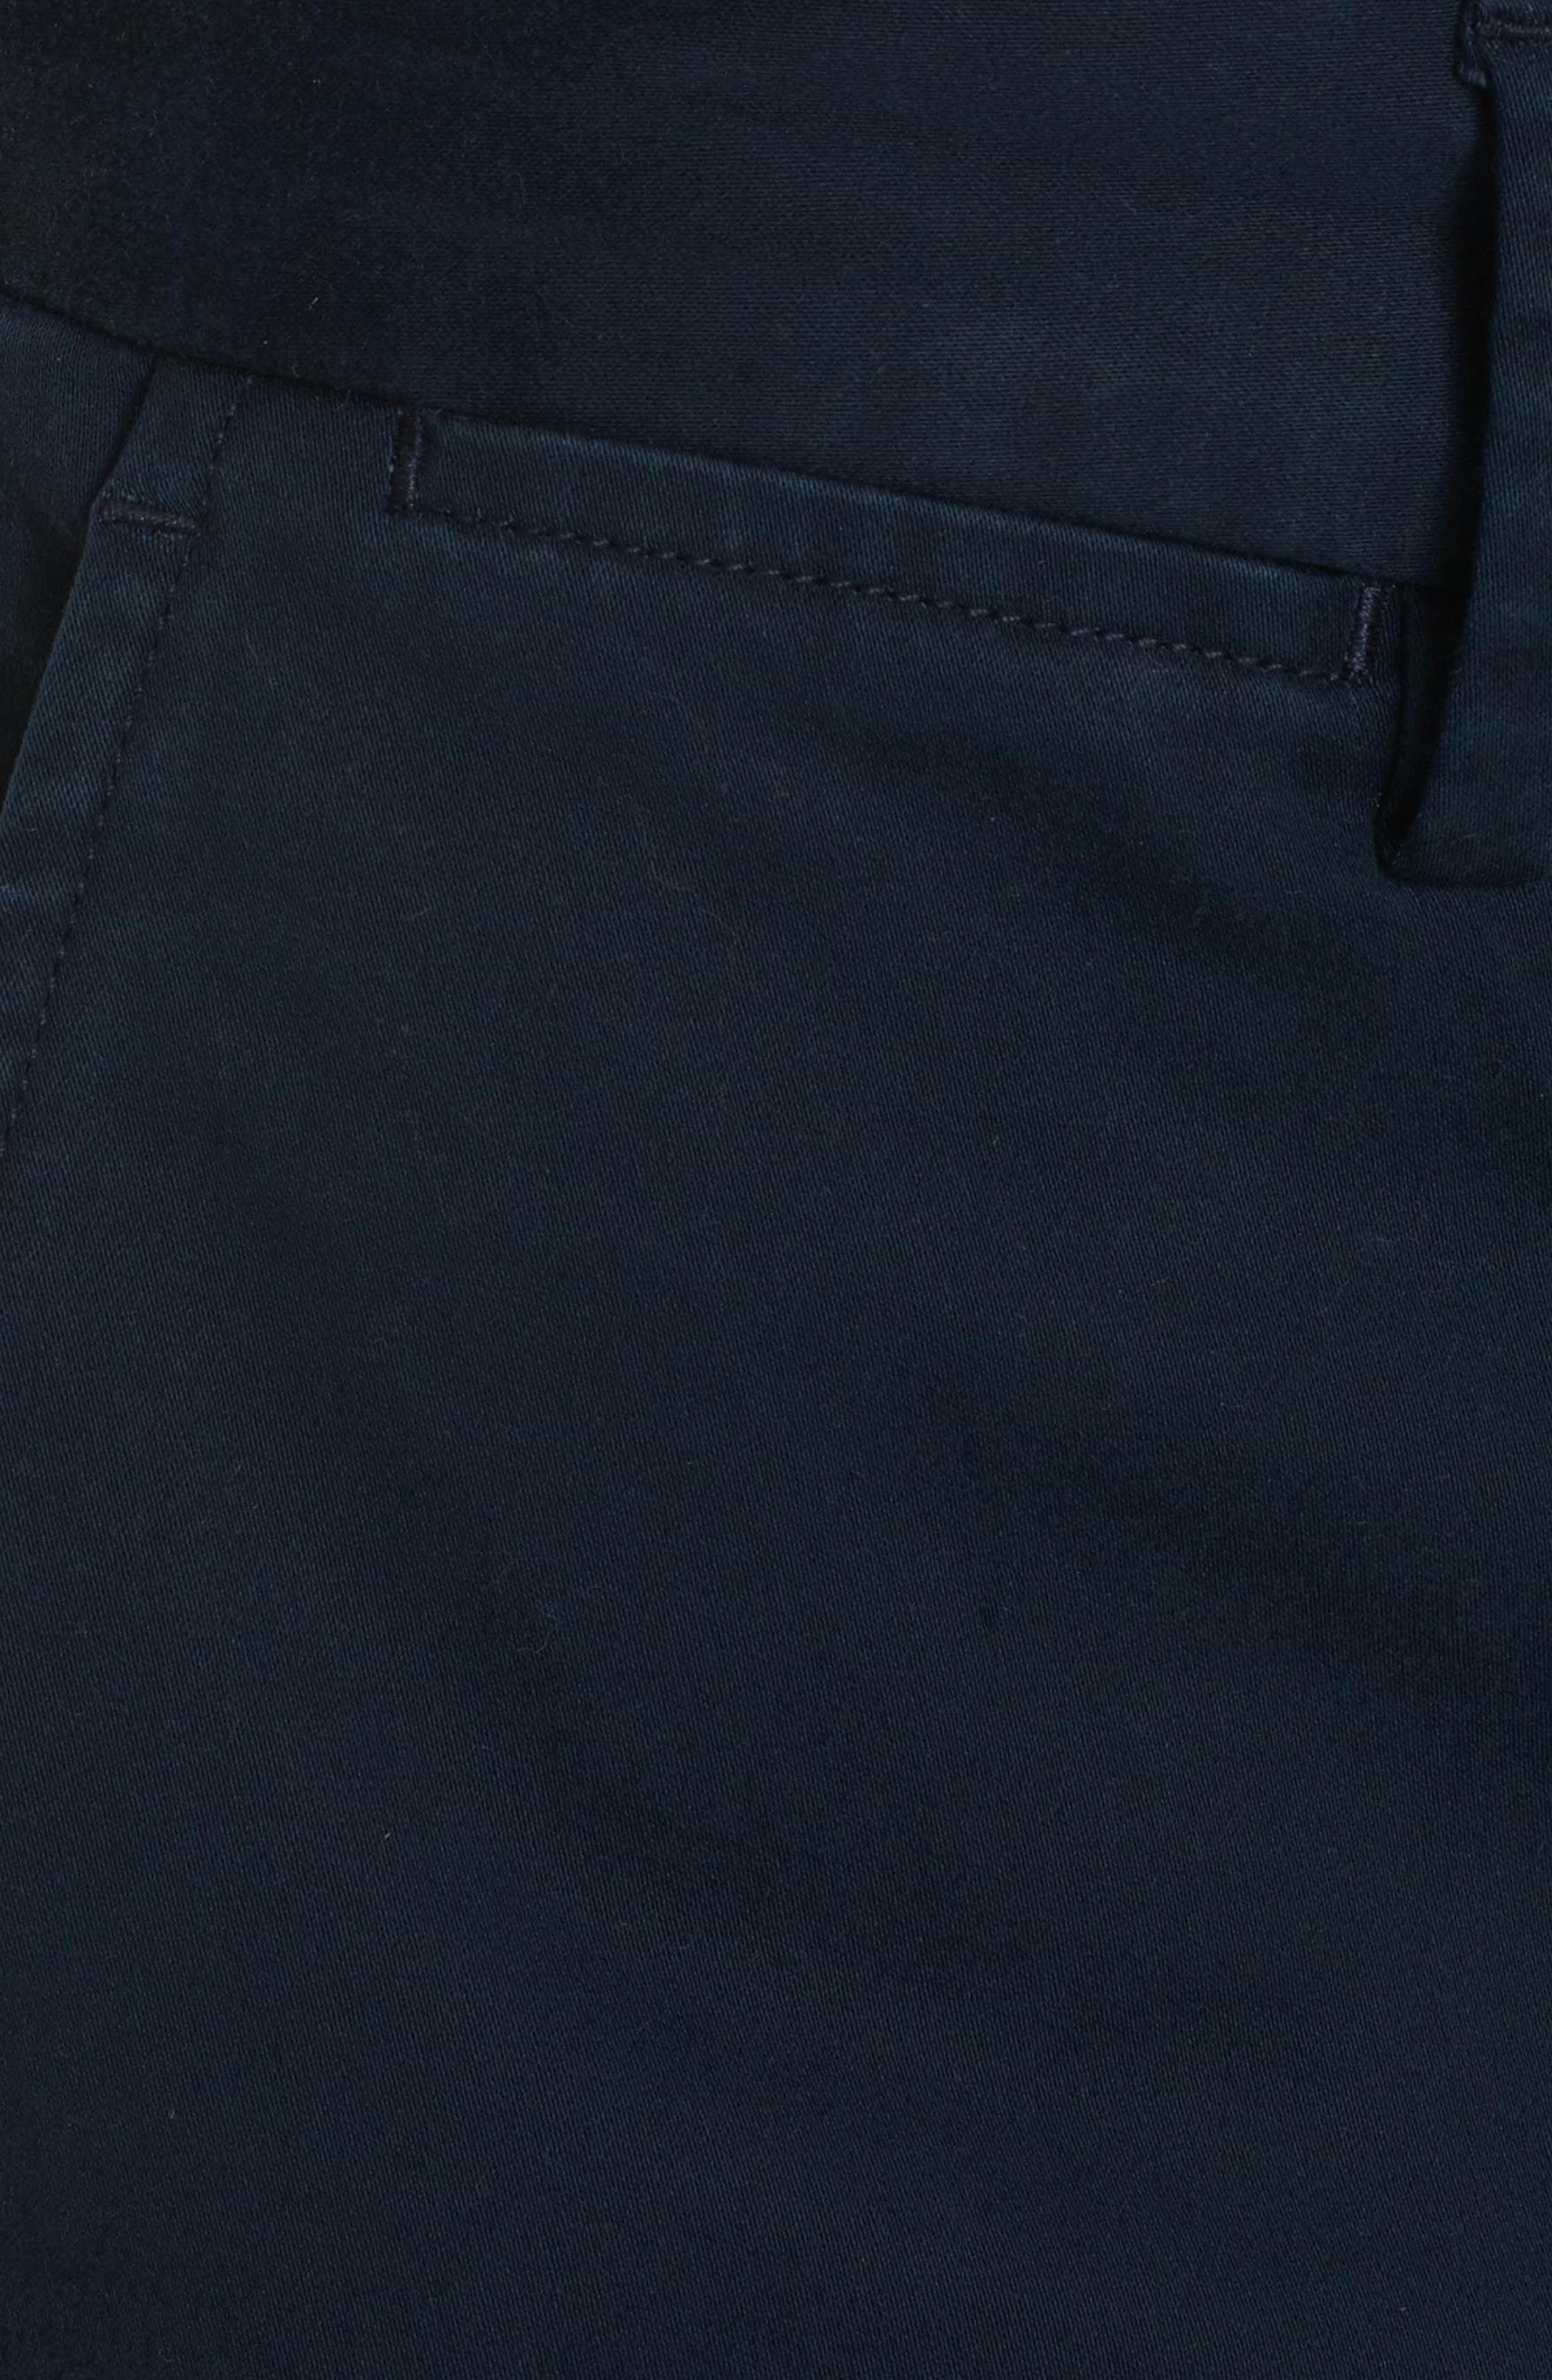 Burton Tailored Fit Pants,                             Alternate thumbnail 4, color,                             Navy